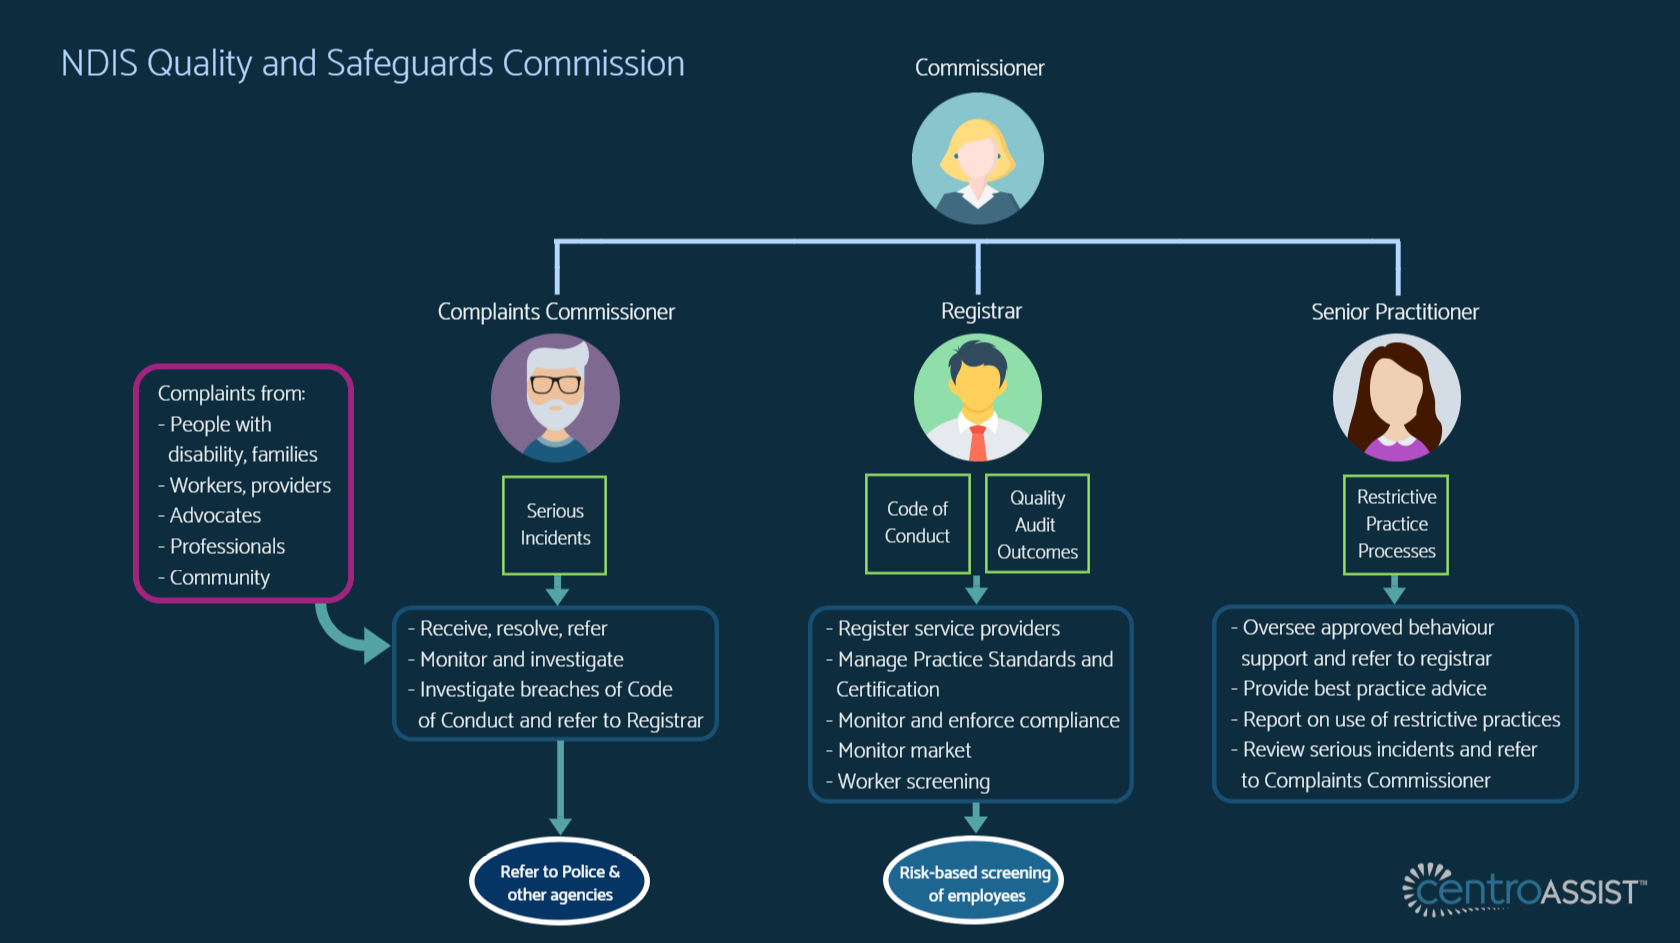 Diagram showing NDIS Quality and Safeguards Commission